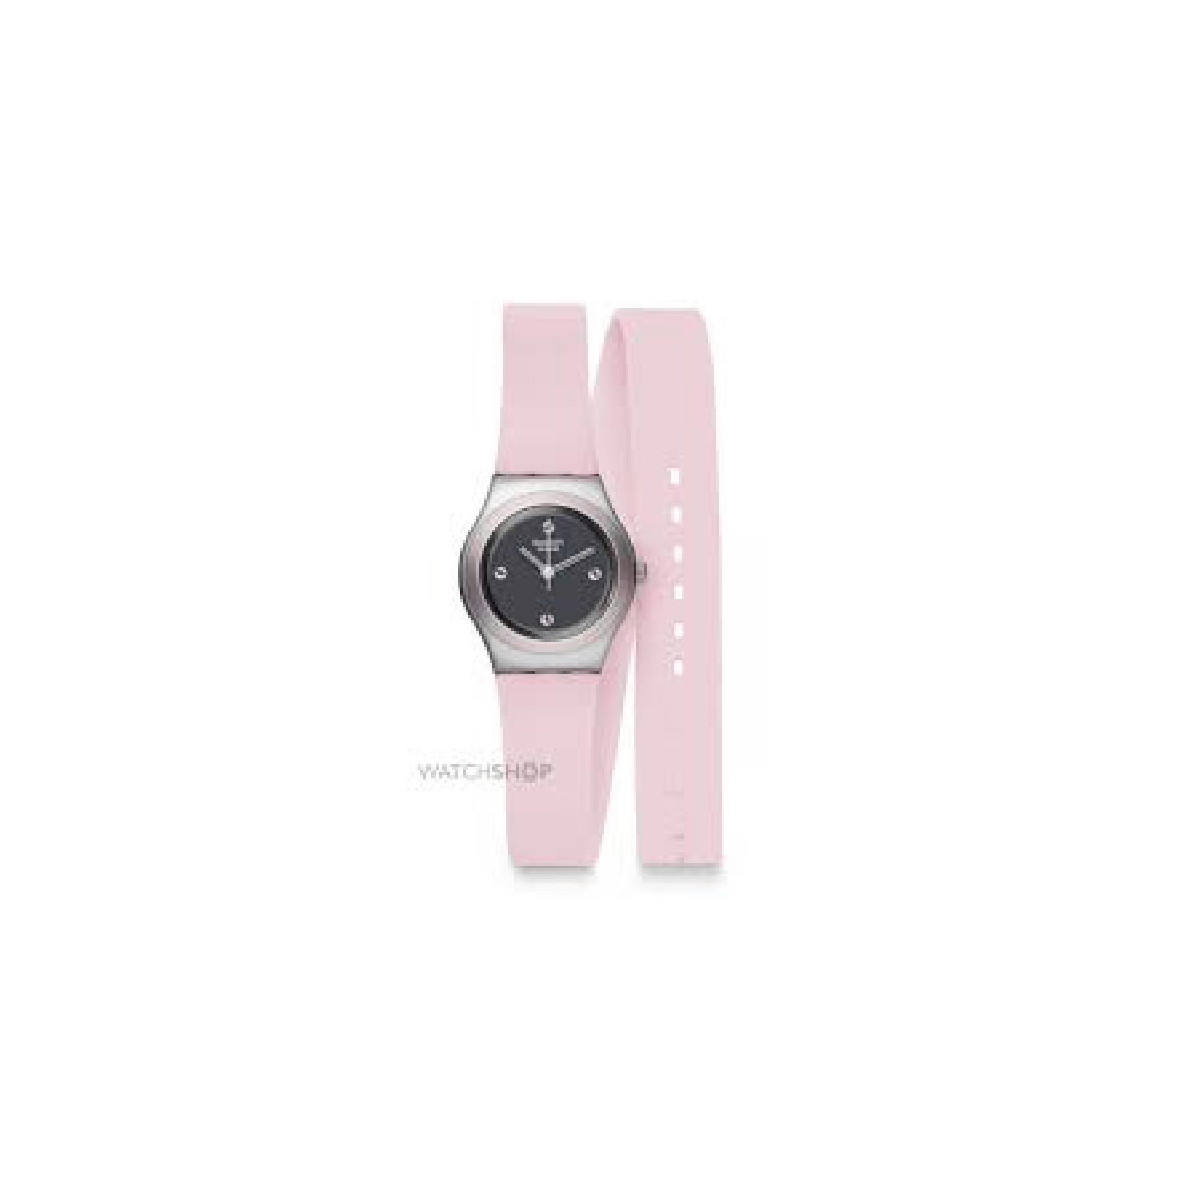 Swatch_YSS1009_Spira_loop_outlet_50%